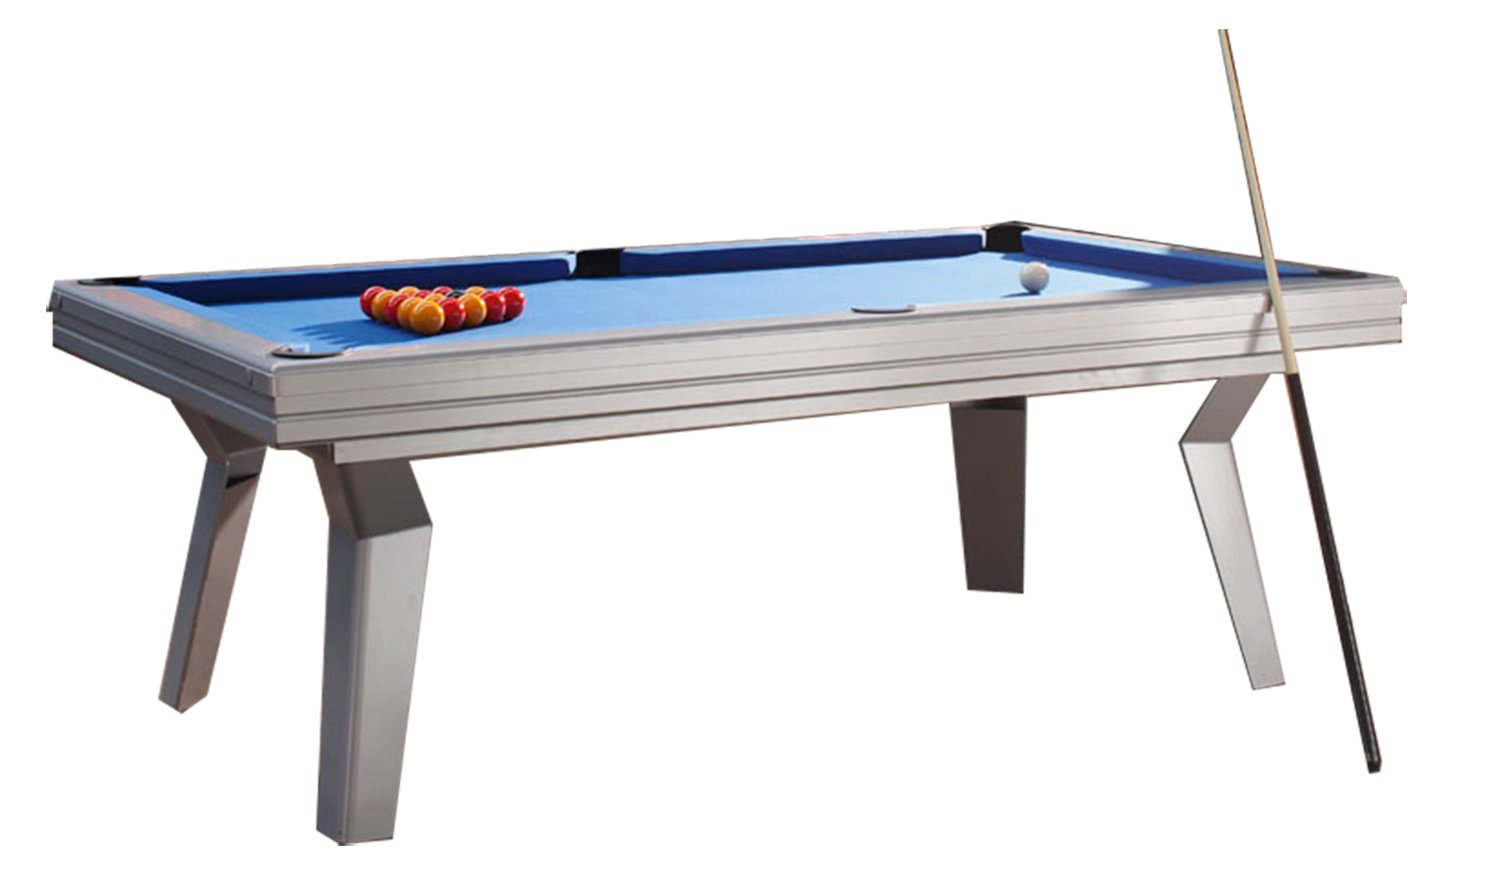 billard toulet pop pool table 7 ft 8 ft 9 ft liberty games. Black Bedroom Furniture Sets. Home Design Ideas